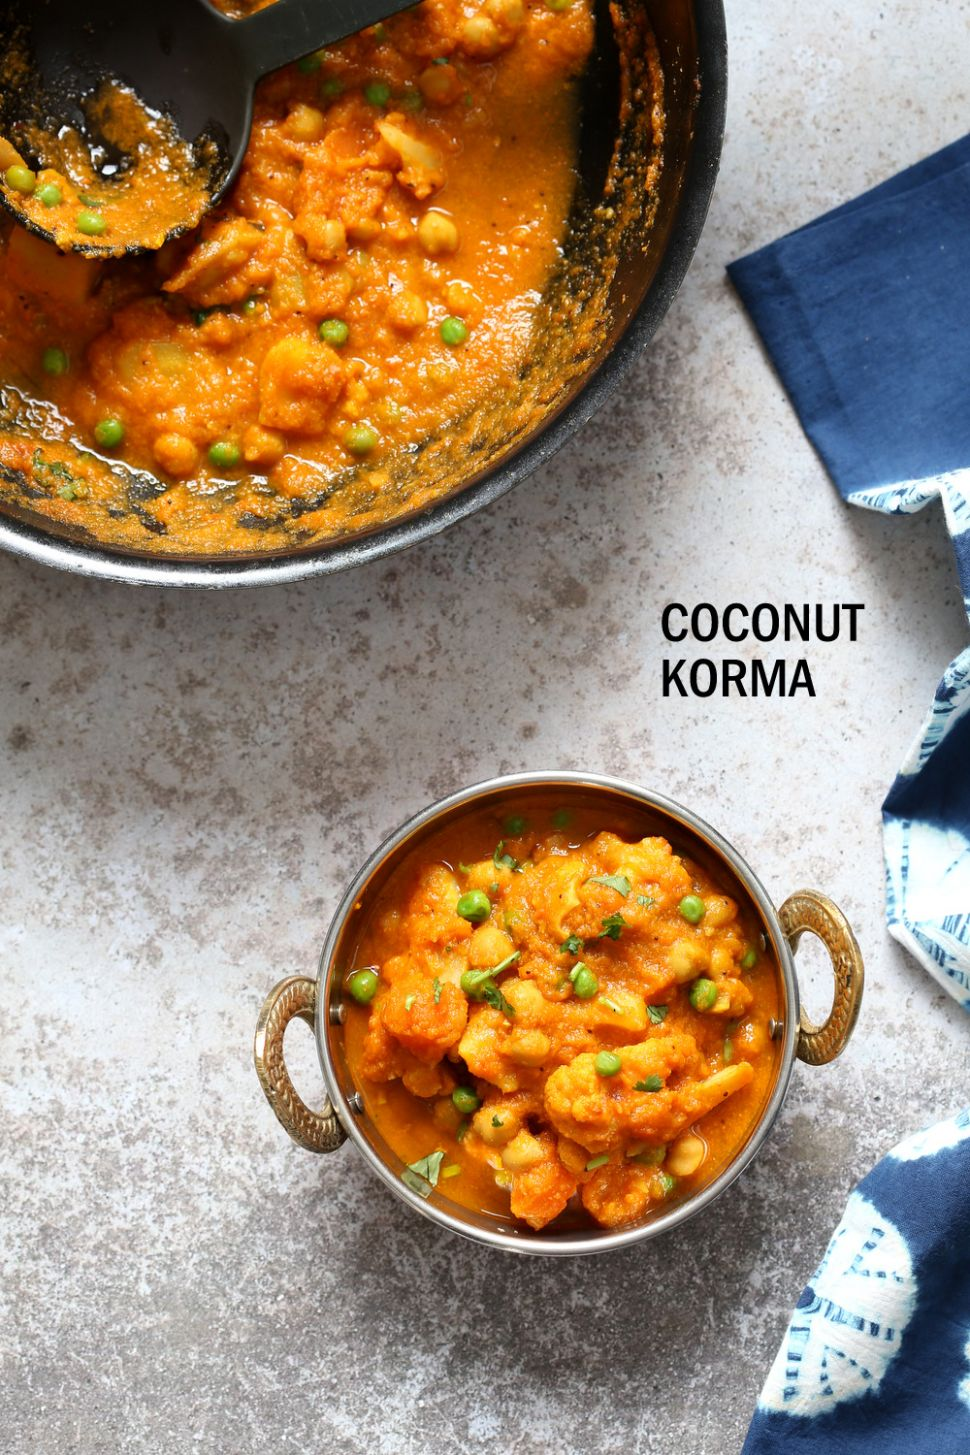 Veggie Kurma - Easy Coconut Korma Sauce with Vegetables - Recipes Vegetable Korma